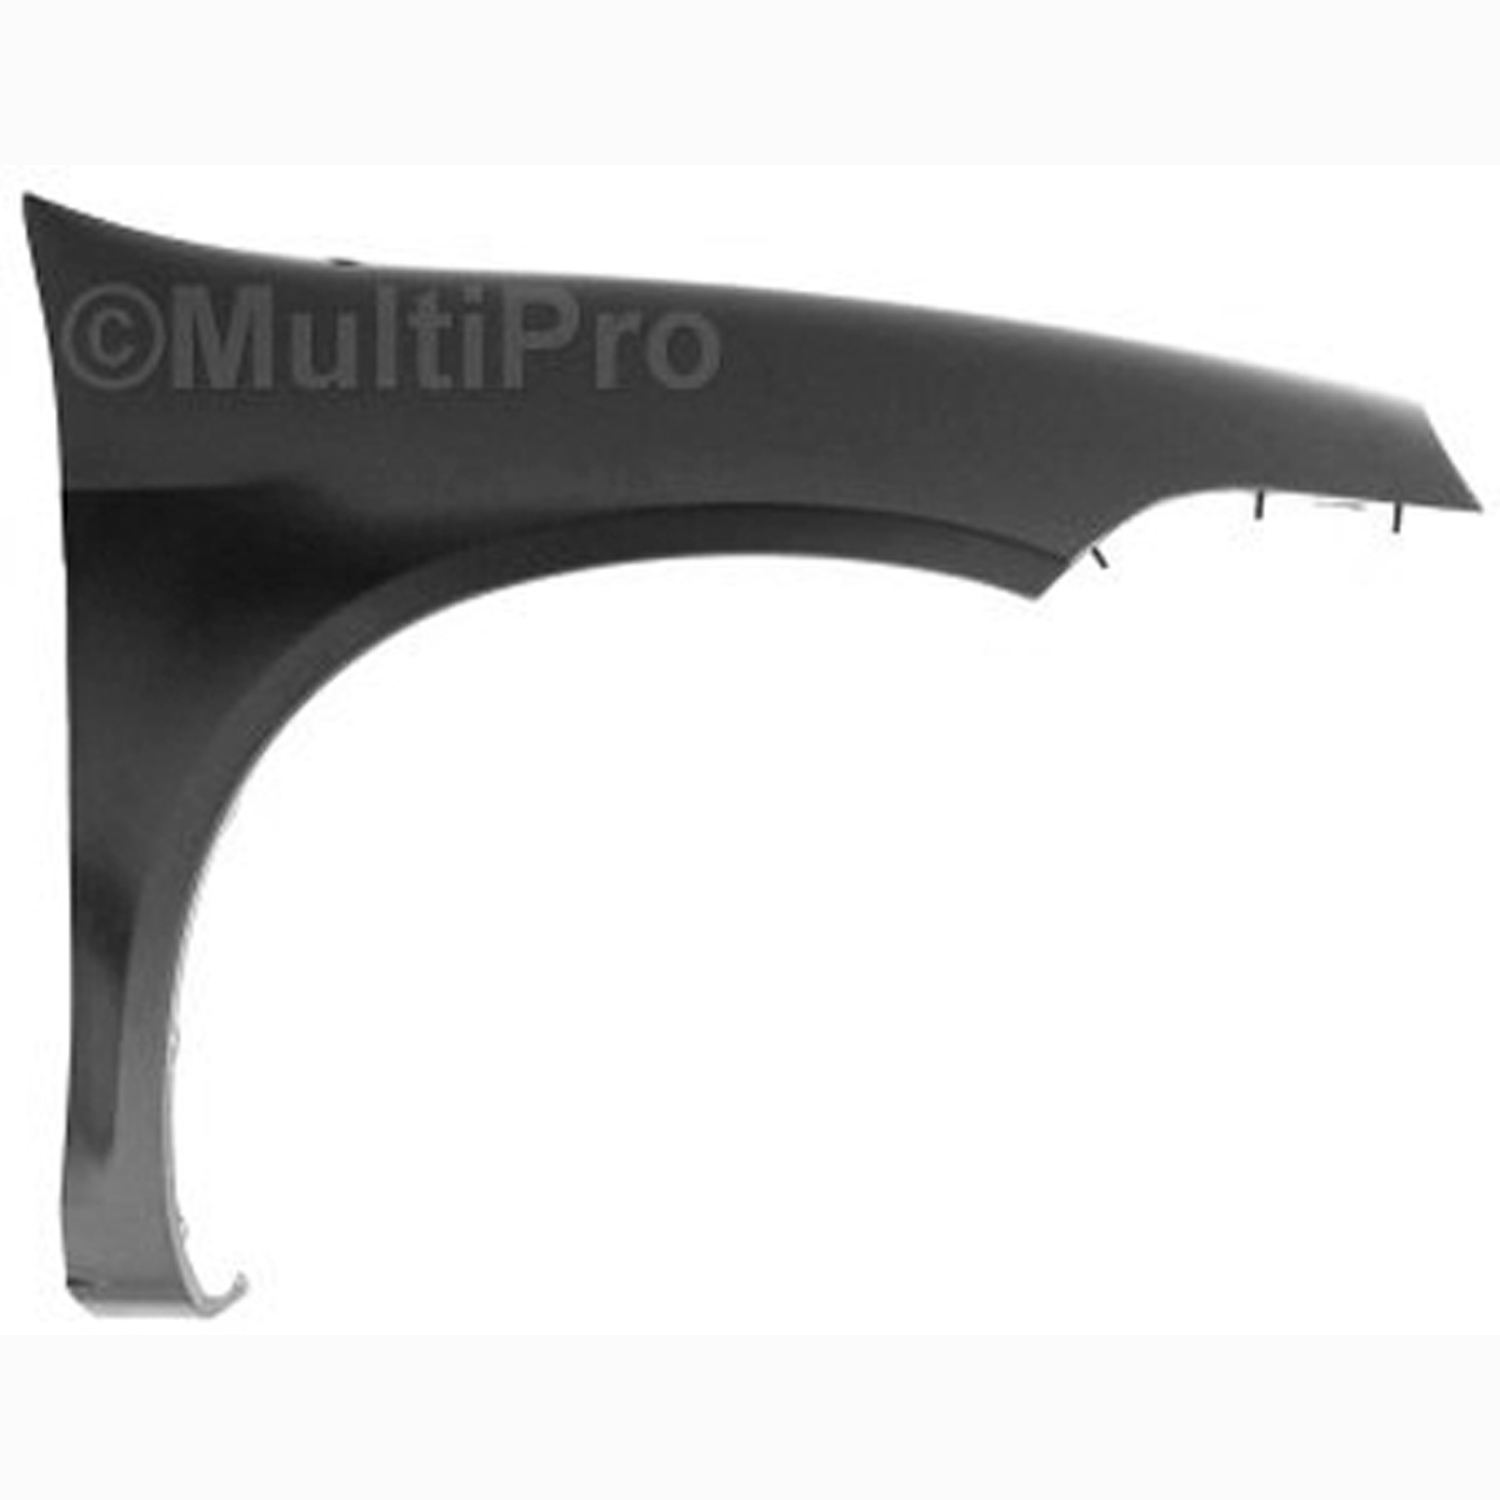 For Dodge Neon 2000-2005 Replace CH1241210PP Front Passenger Side Fender